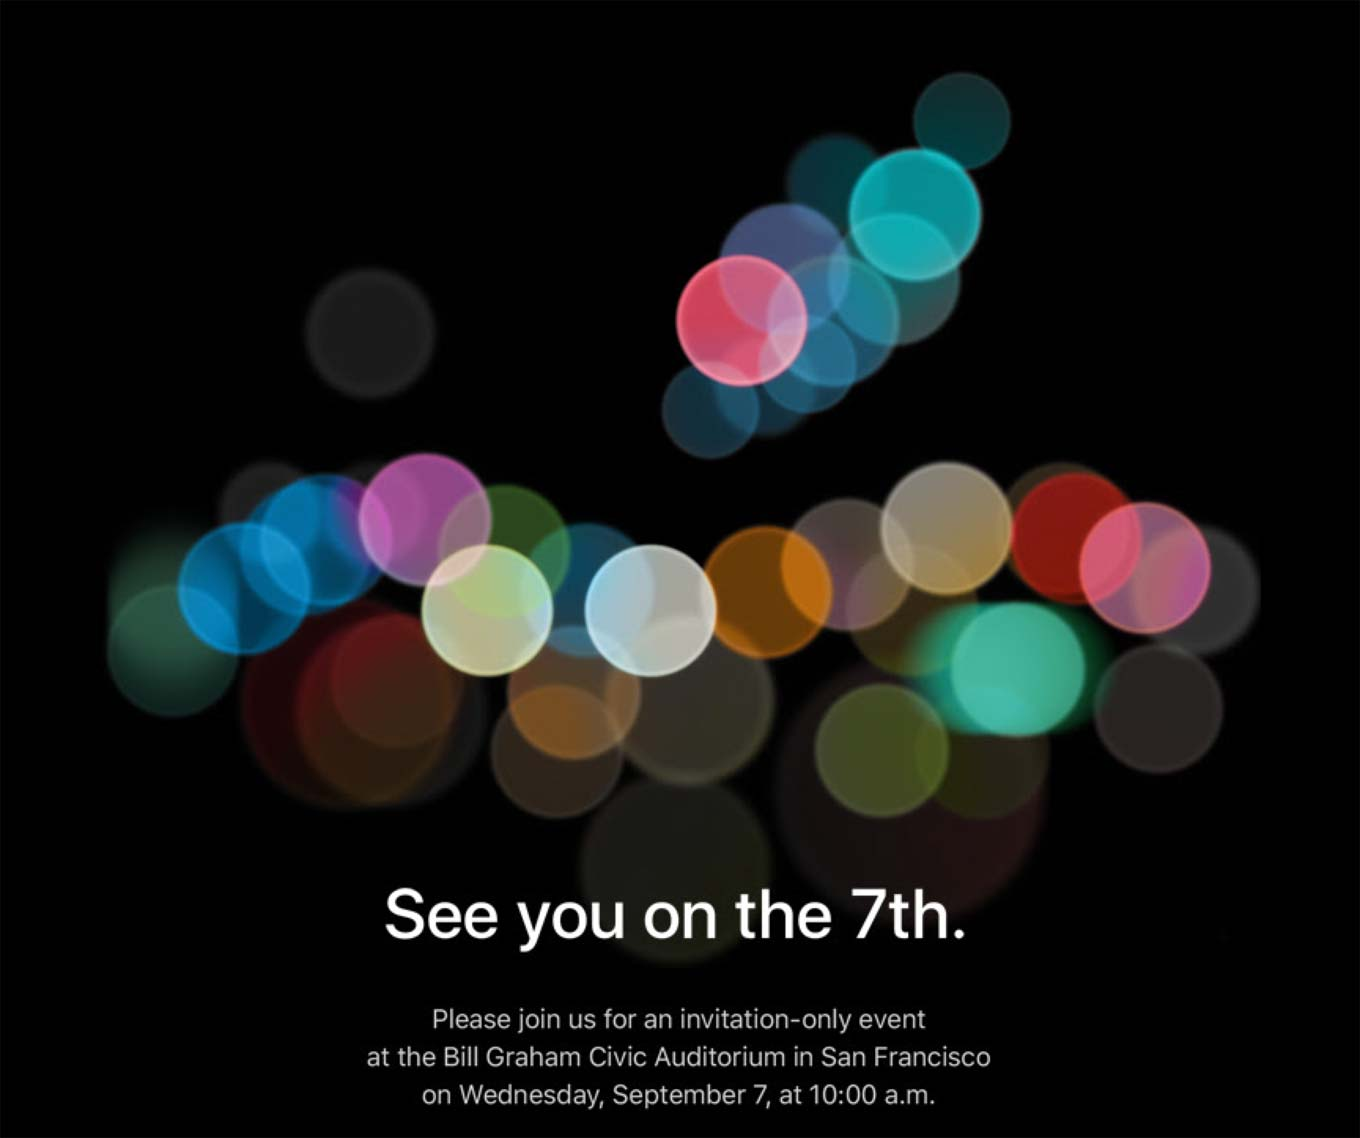 apple-sept7-invite